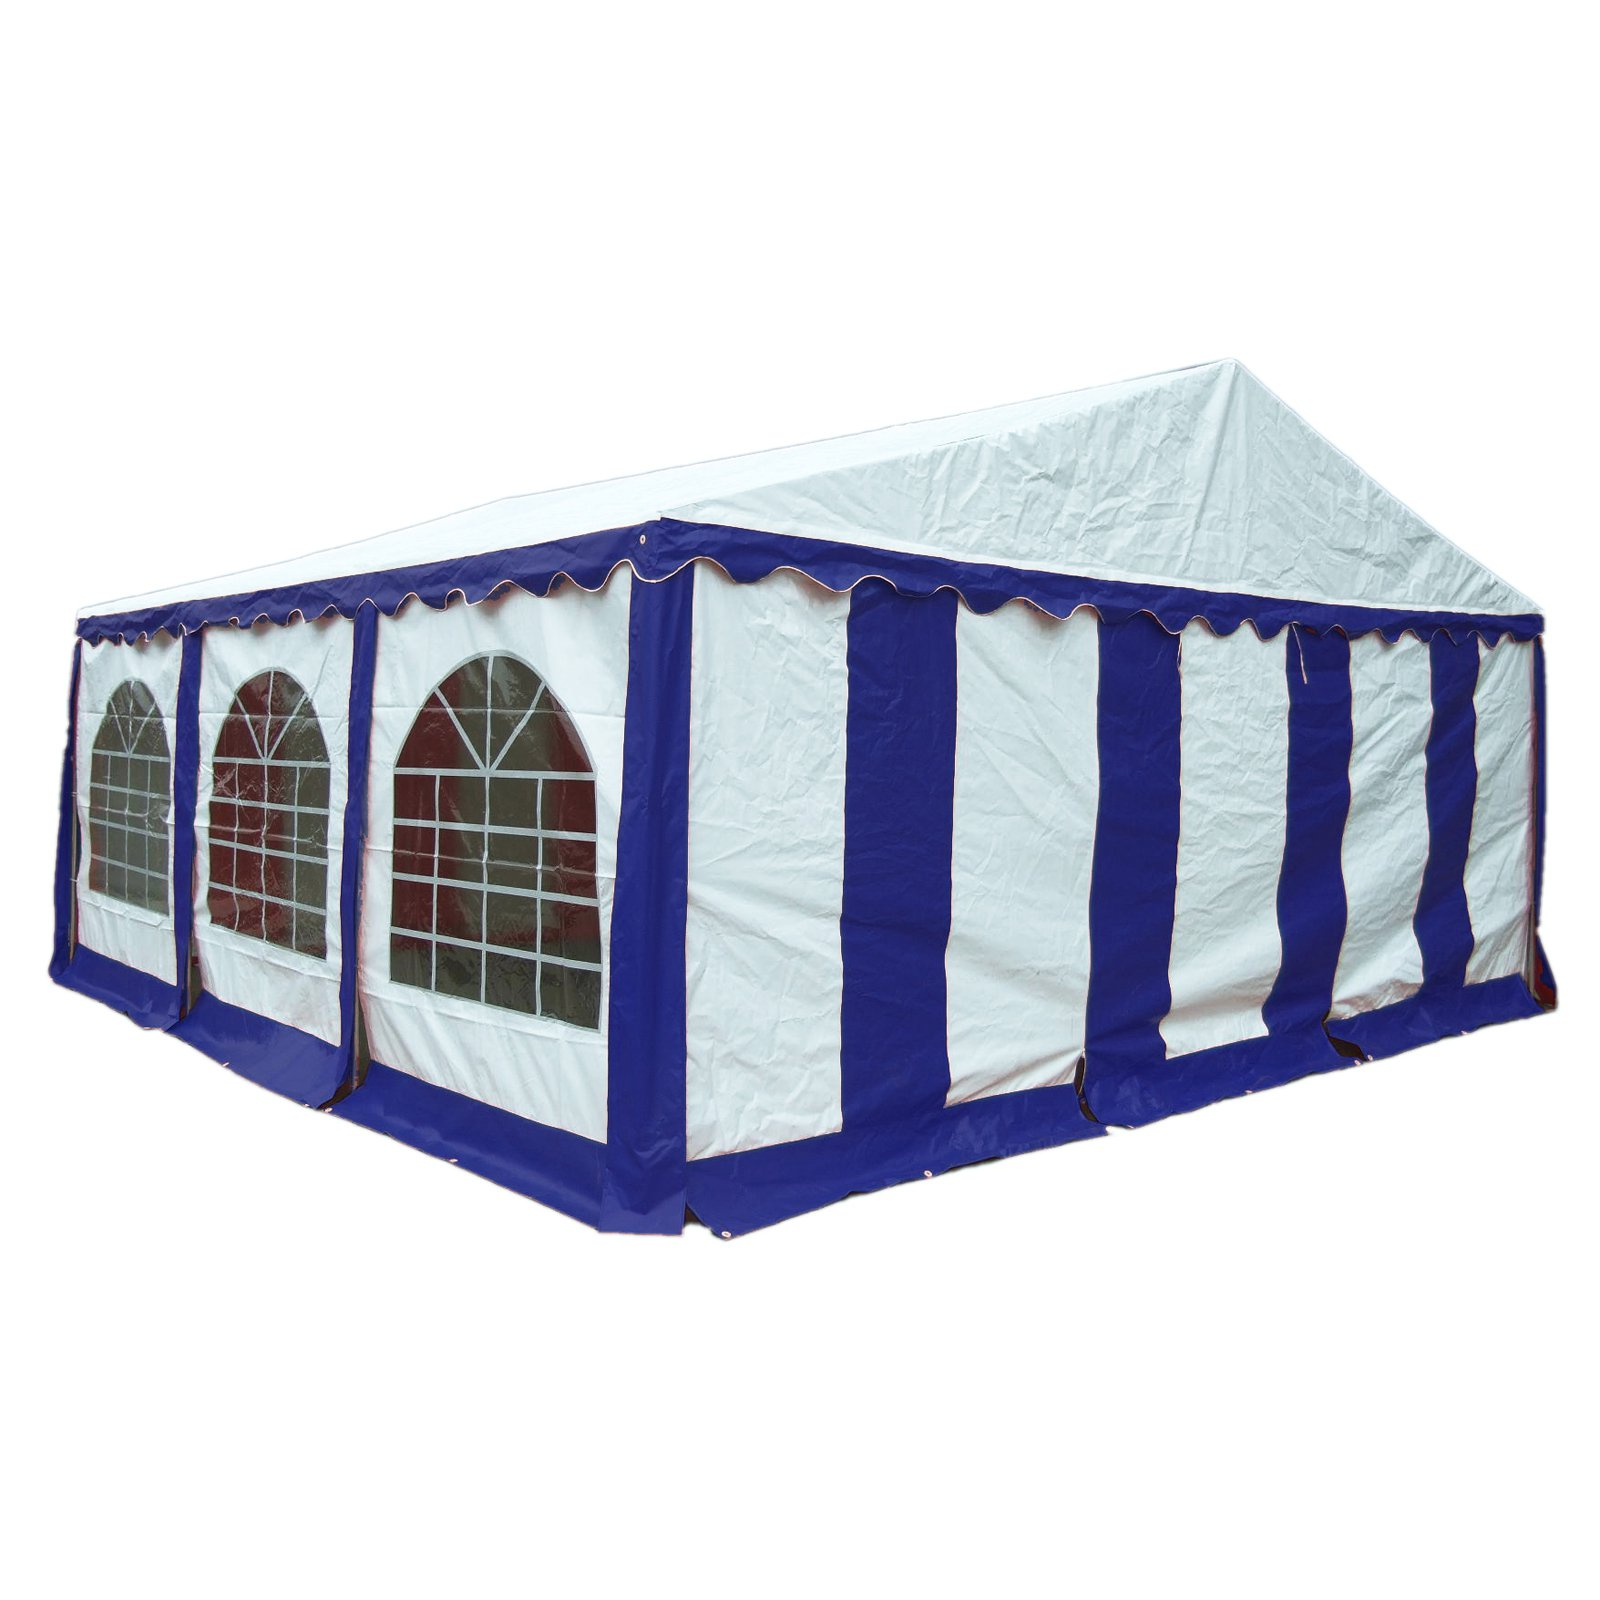 Enclosure Kit with Windows for Party Tent, 20' x 20'/6m x 6m, Blue/White, (Frame and Cover Not Included)